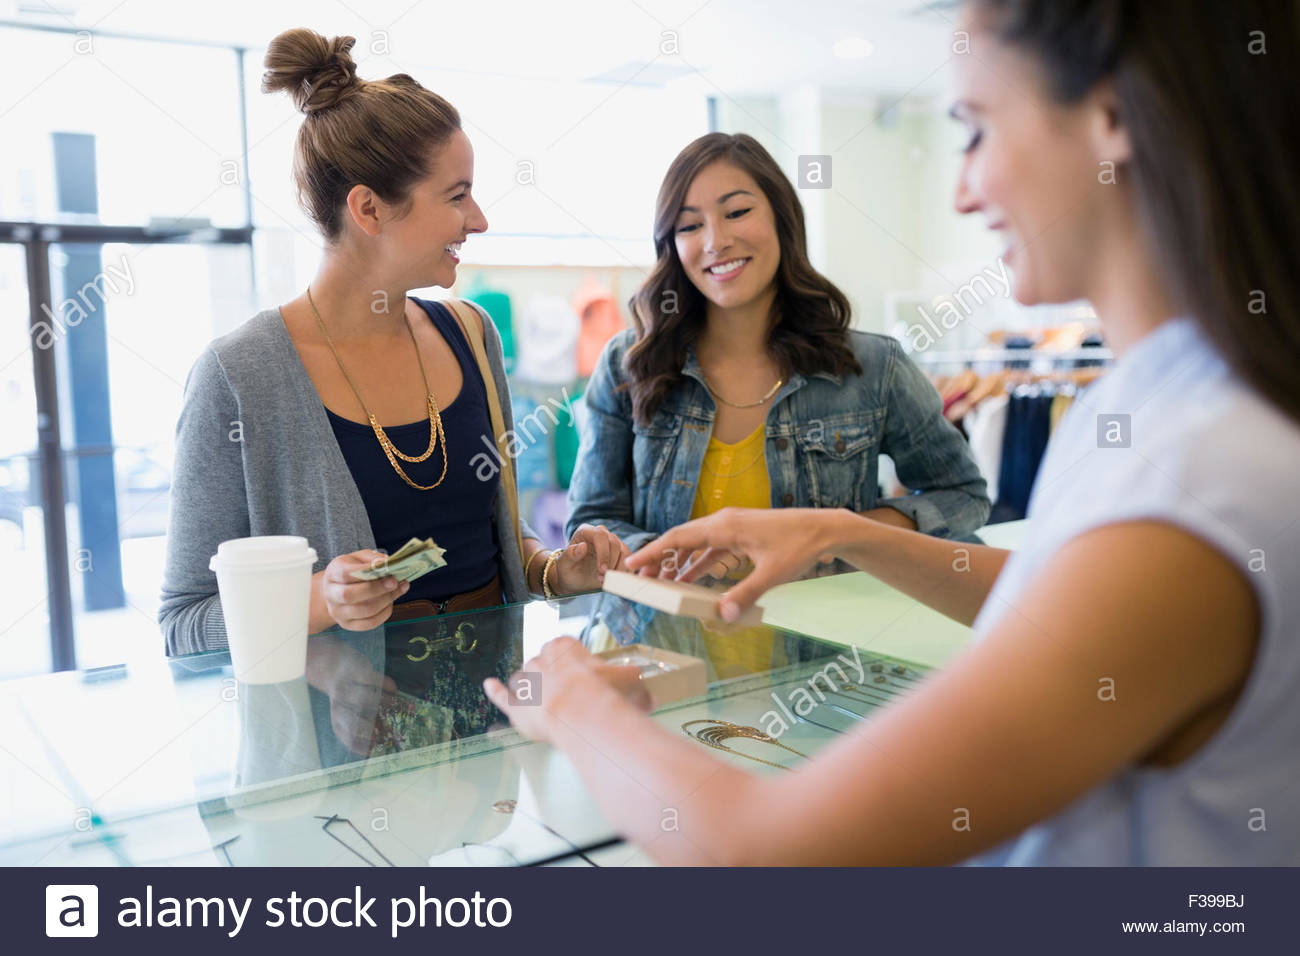 Women buying jewelry at shop counter - Stock Image